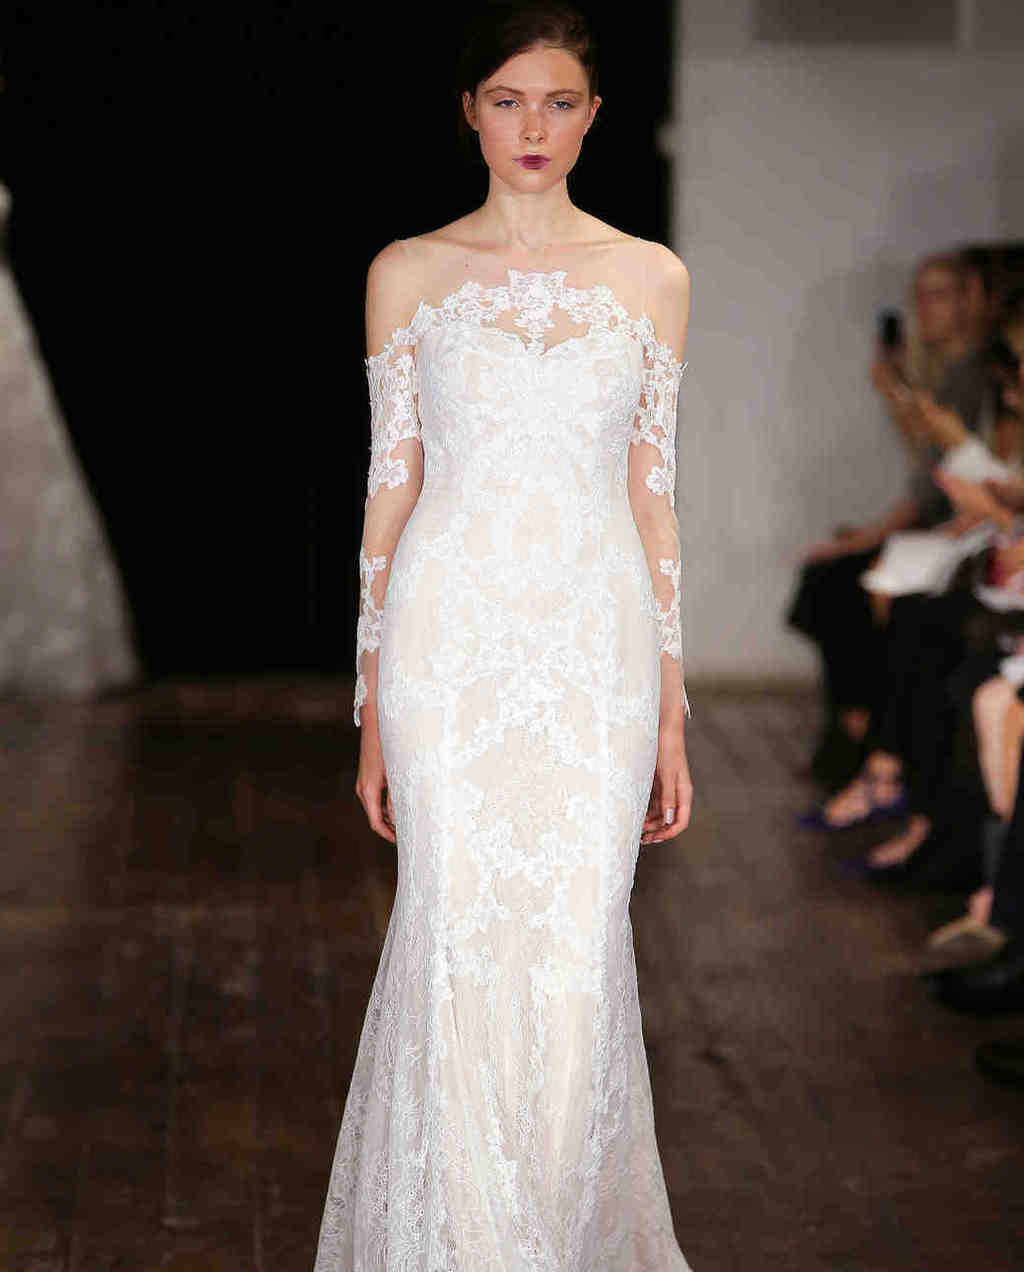 Rivini-wedding-dress-fall2017-62033510-014_vert